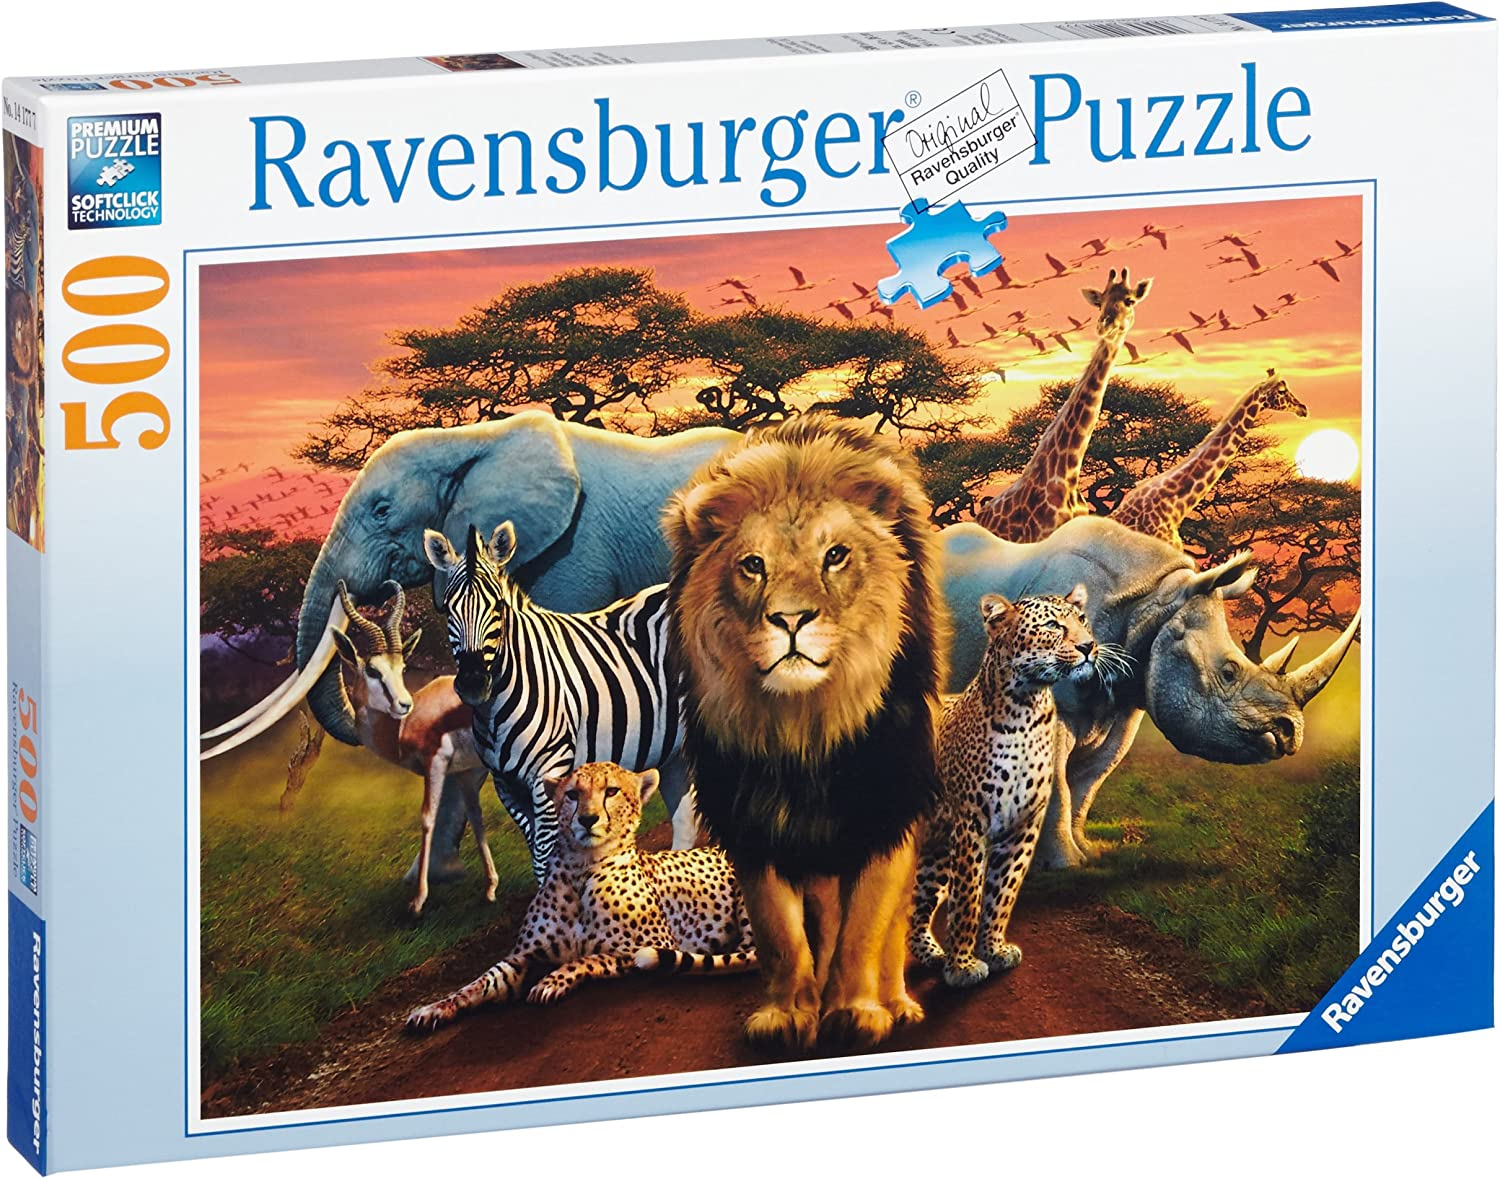 Ravensburger African Splendor 500 Piece Jigsaw Puzzle for Adults – Every Piece is Unique, Softclick Technology Means Pieces Fit Together Perfectly